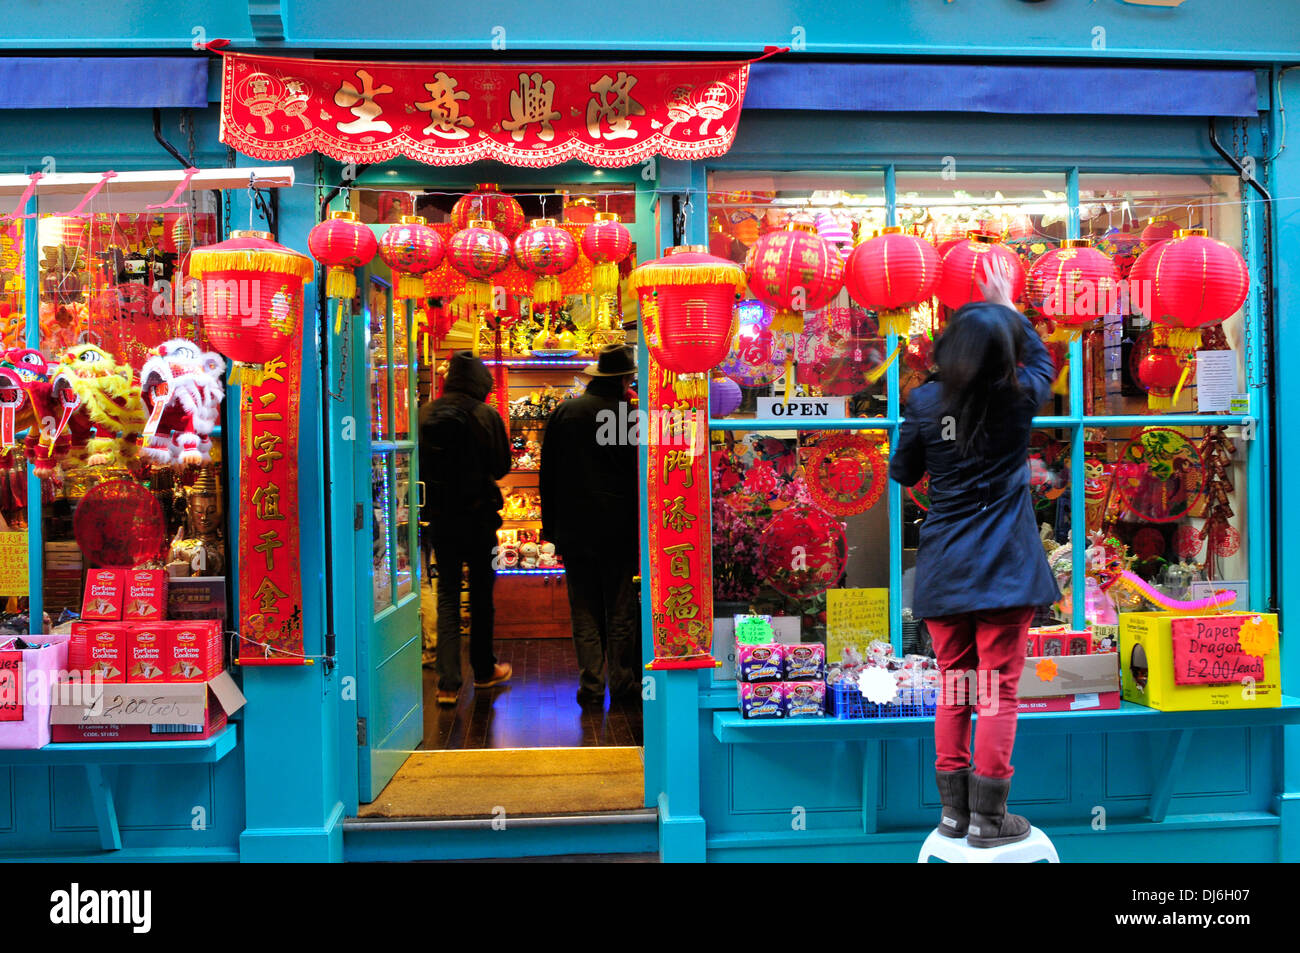 A woman puts up decorations on a shop, in preparation for Chinese new year - Stock Image